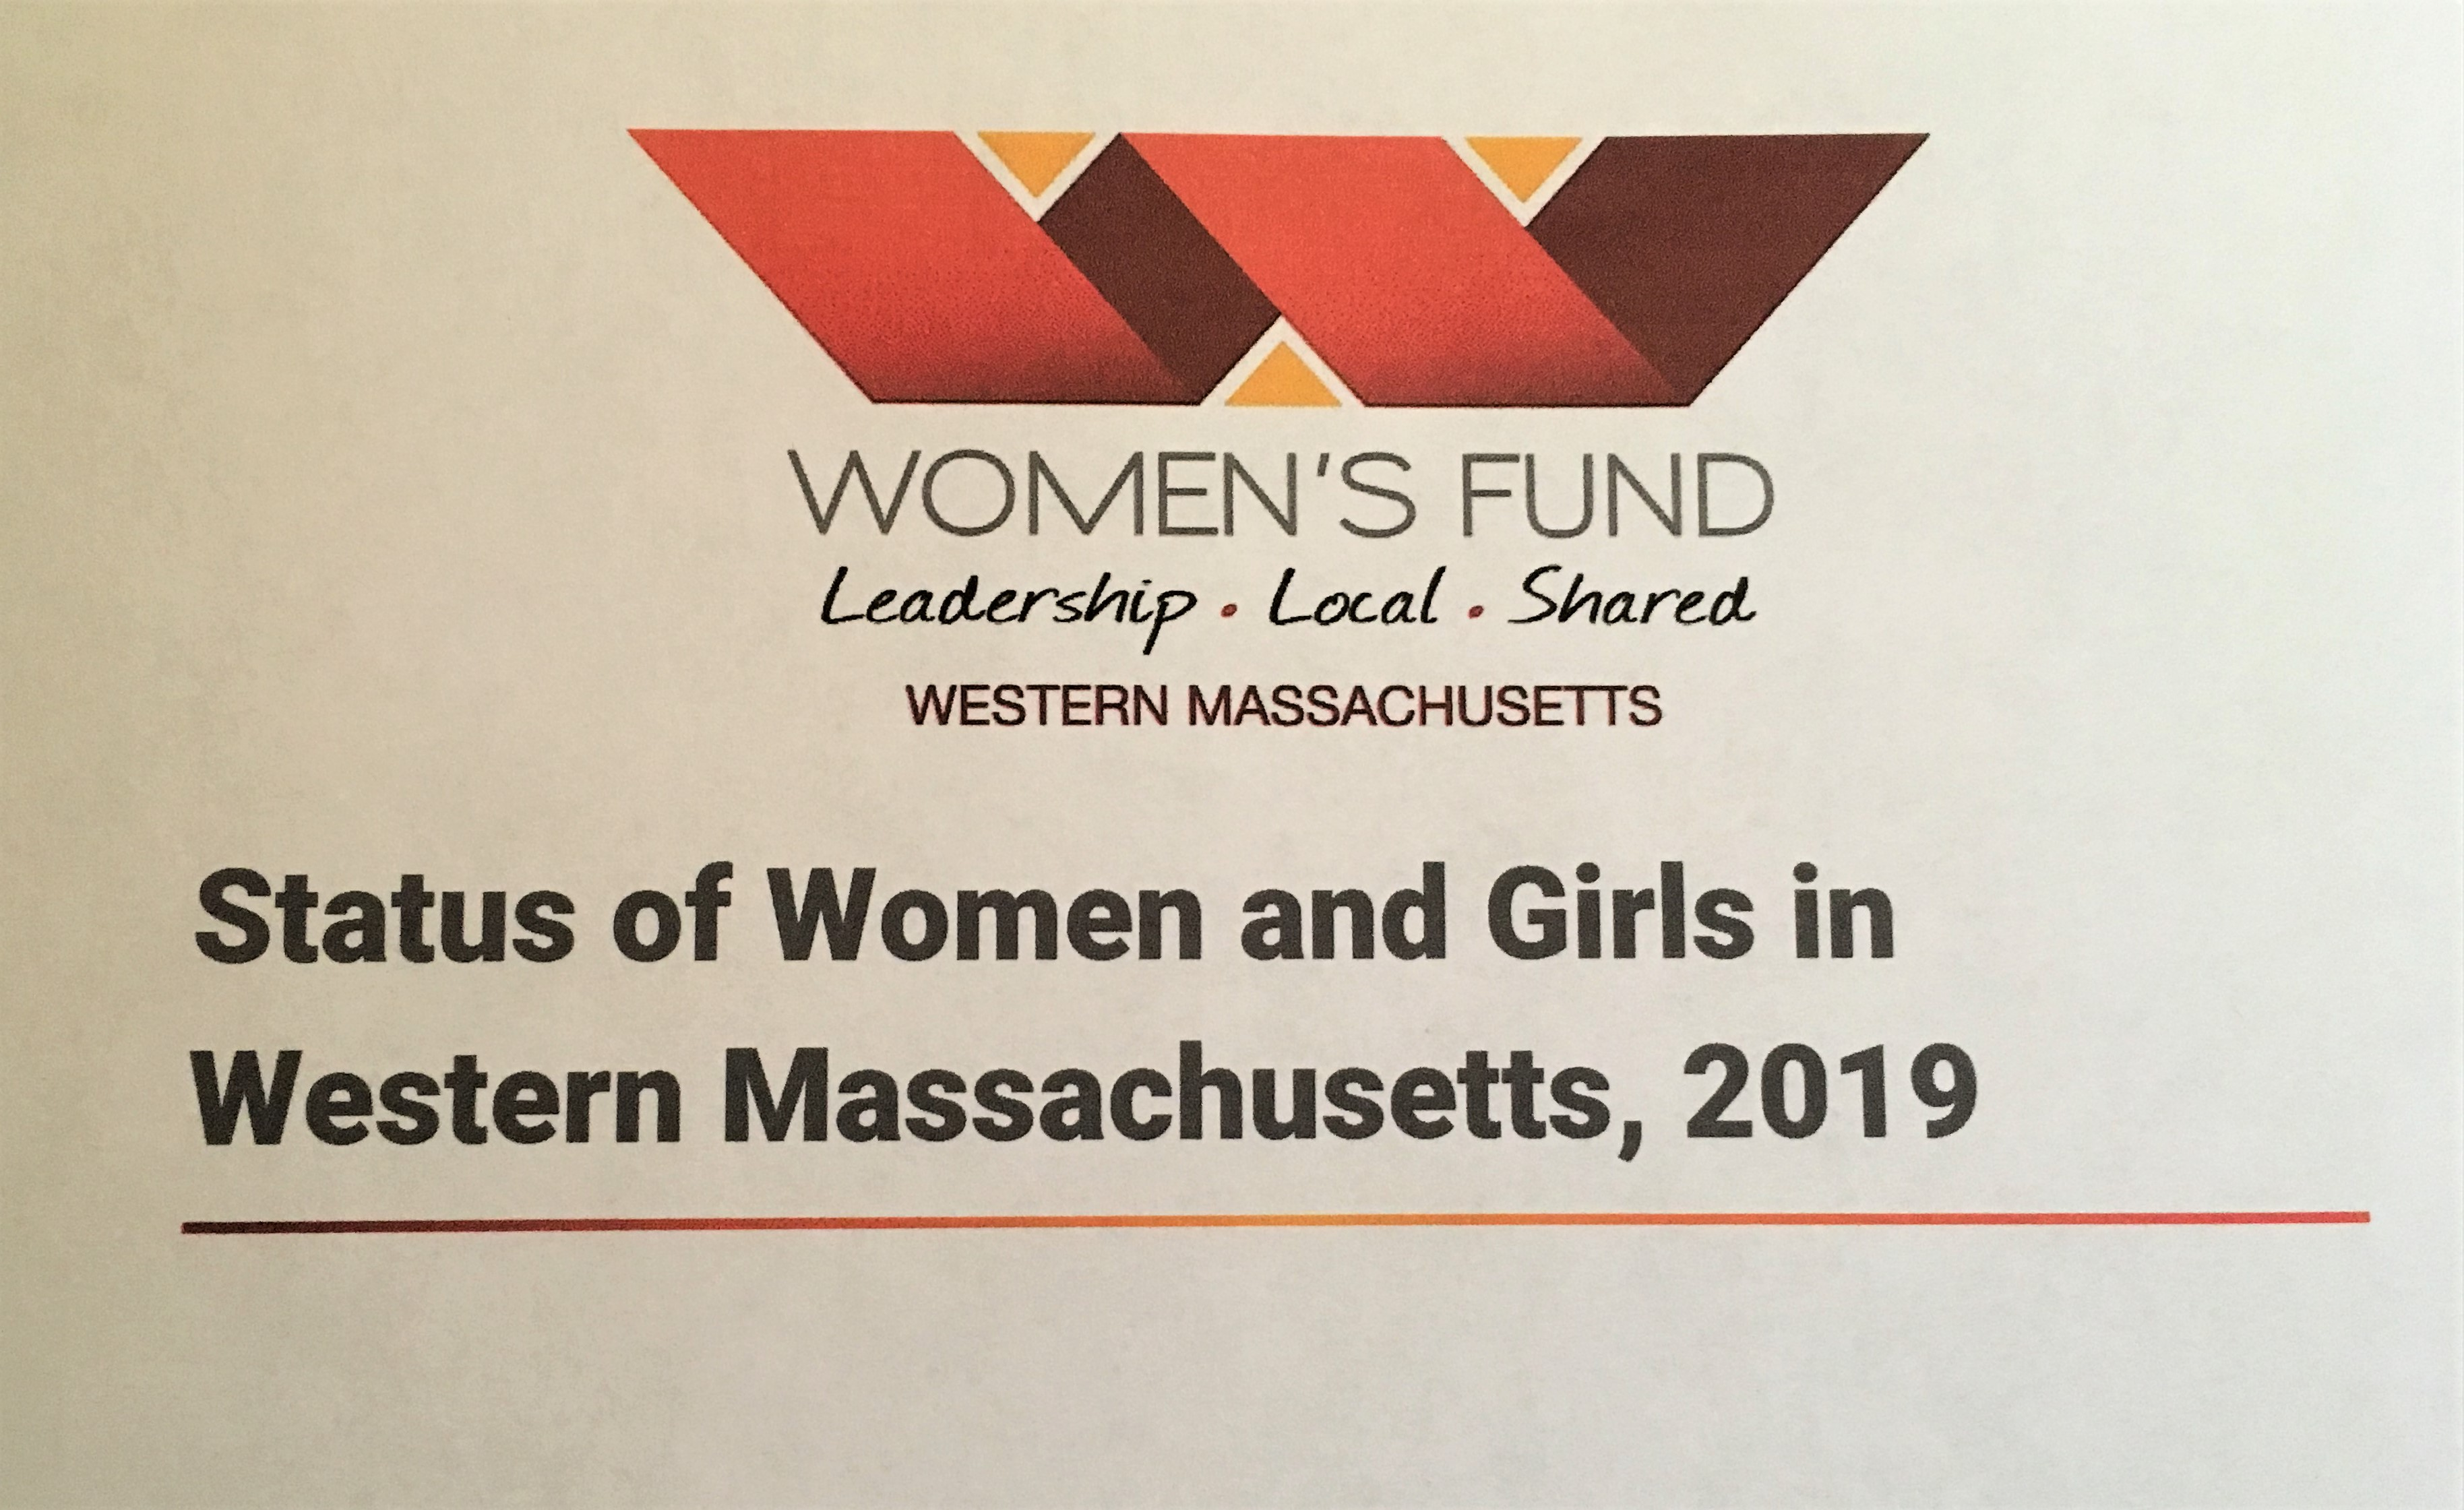 10 takeaways from report on 'Status of Women and Girls in Western Massachusetts, 2019'